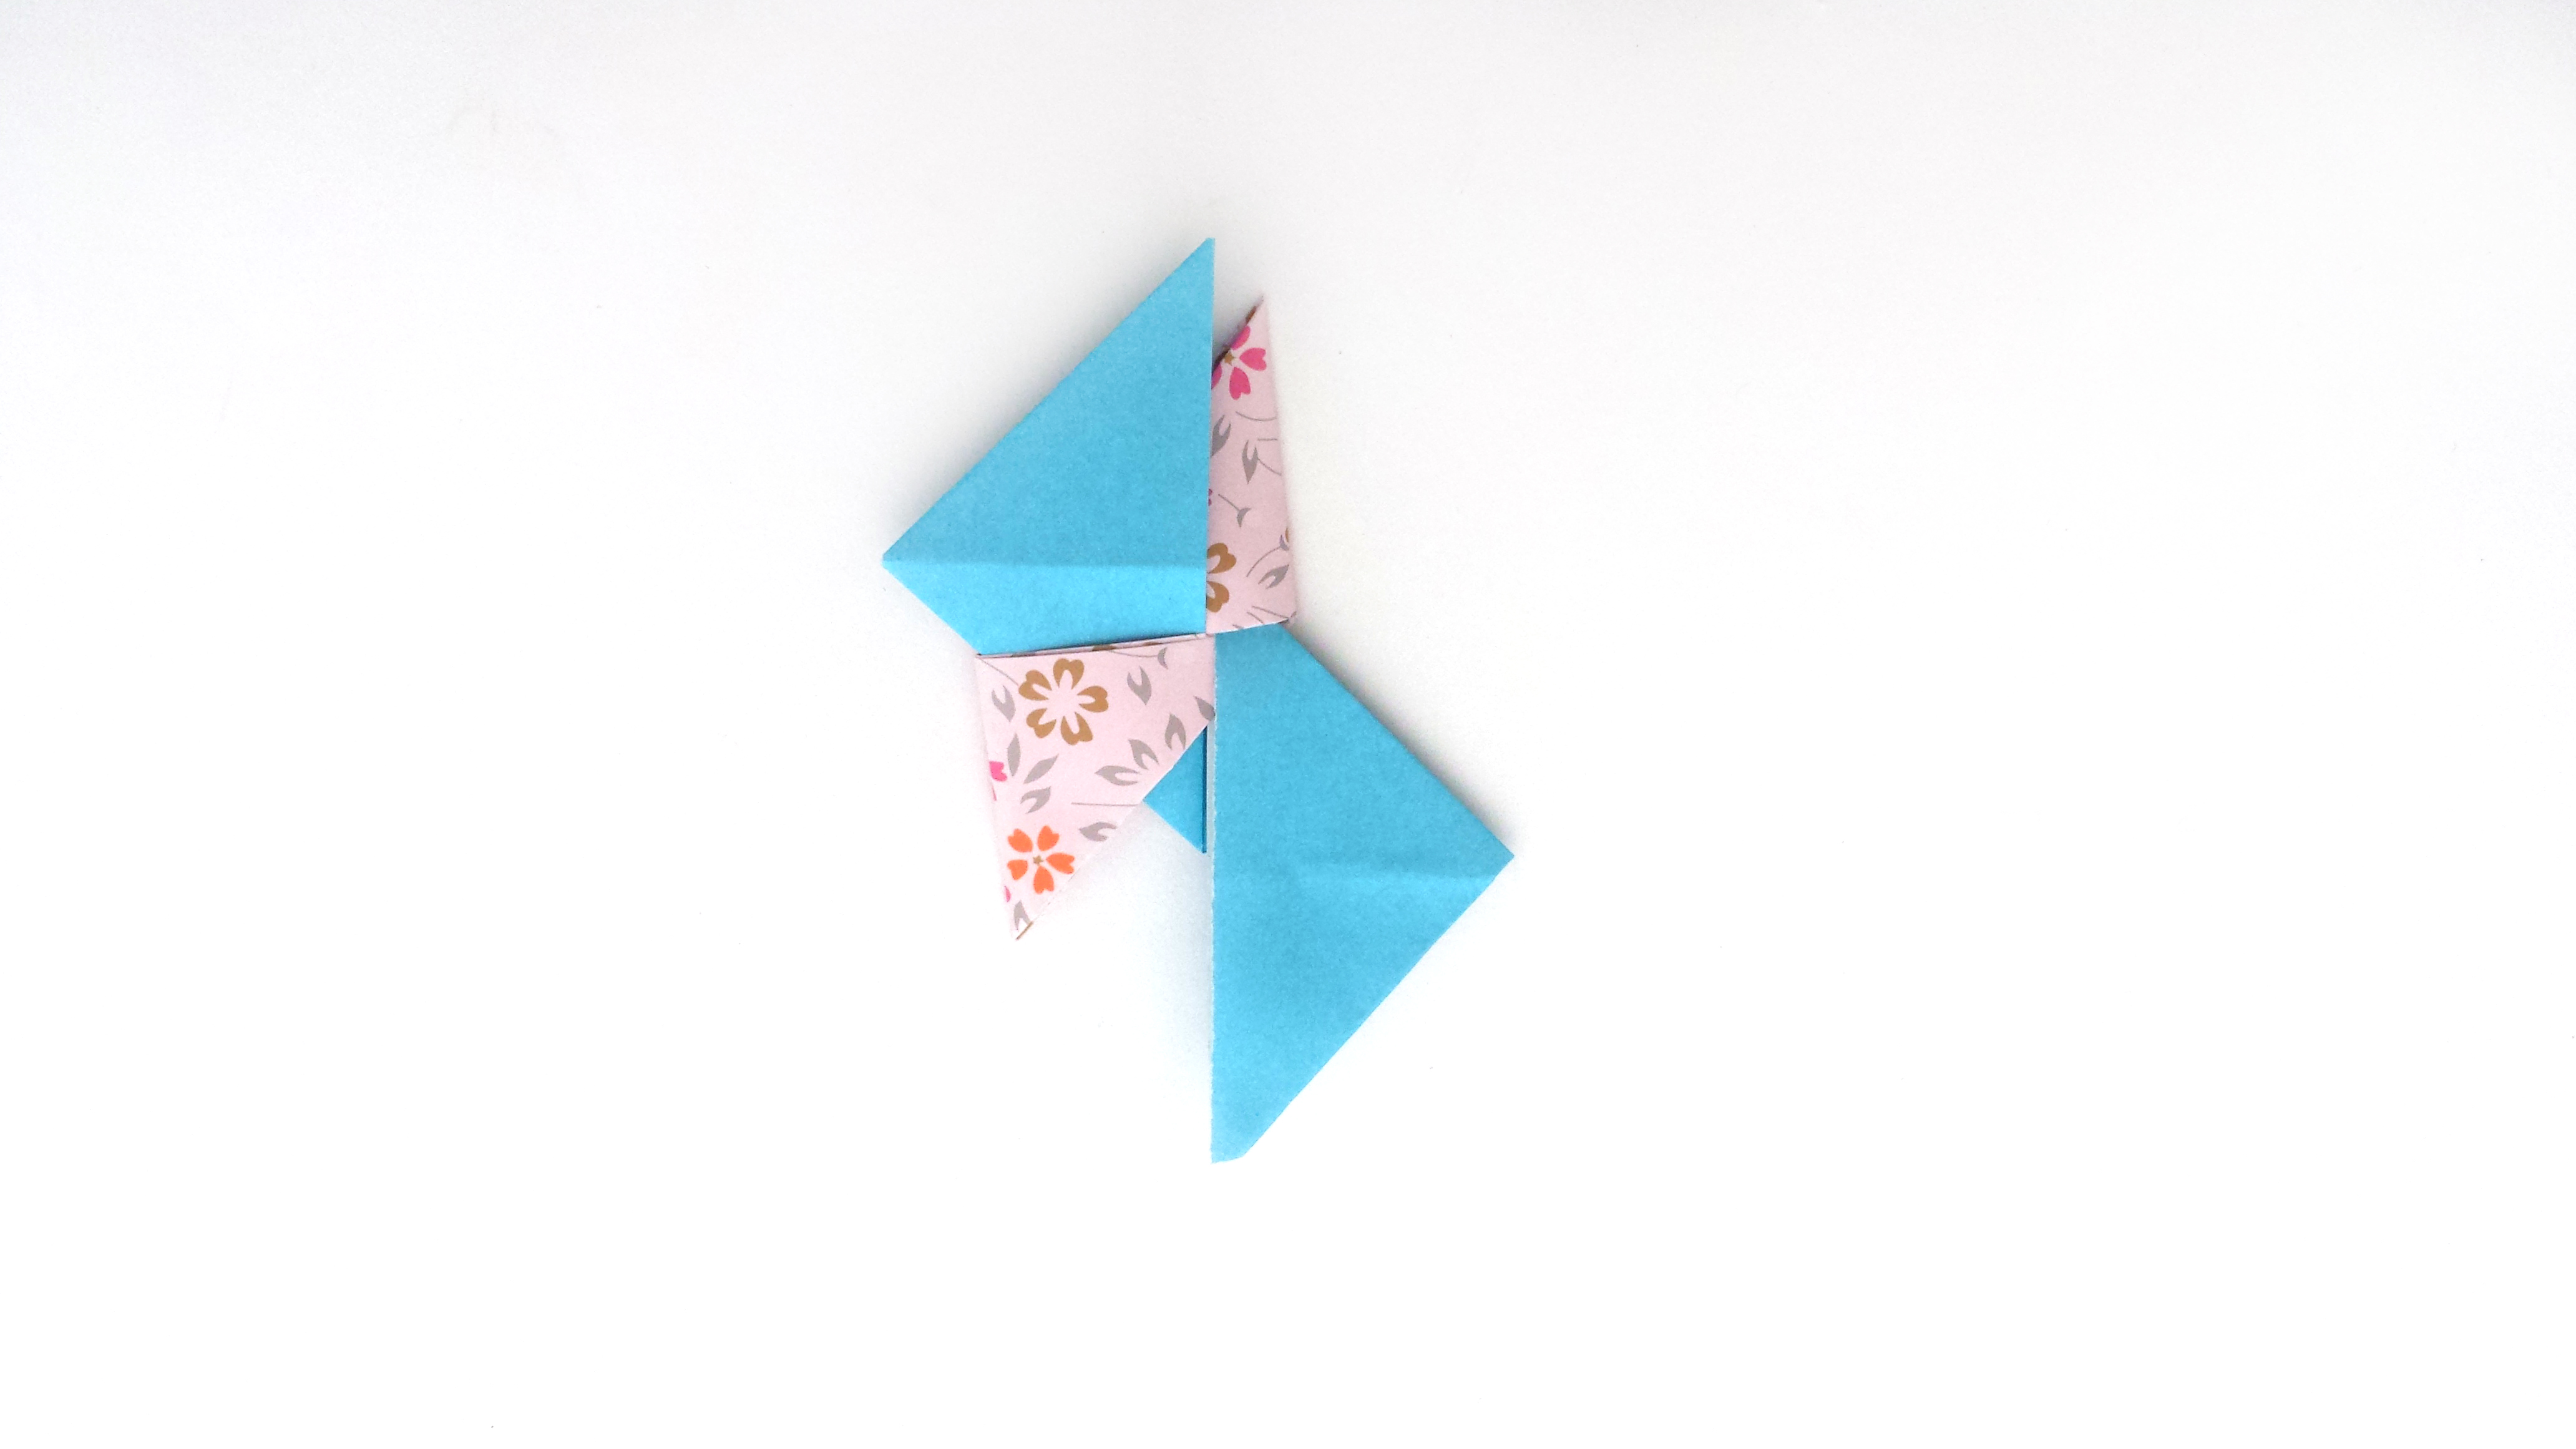 Origami Fidget Spinner - photo#27